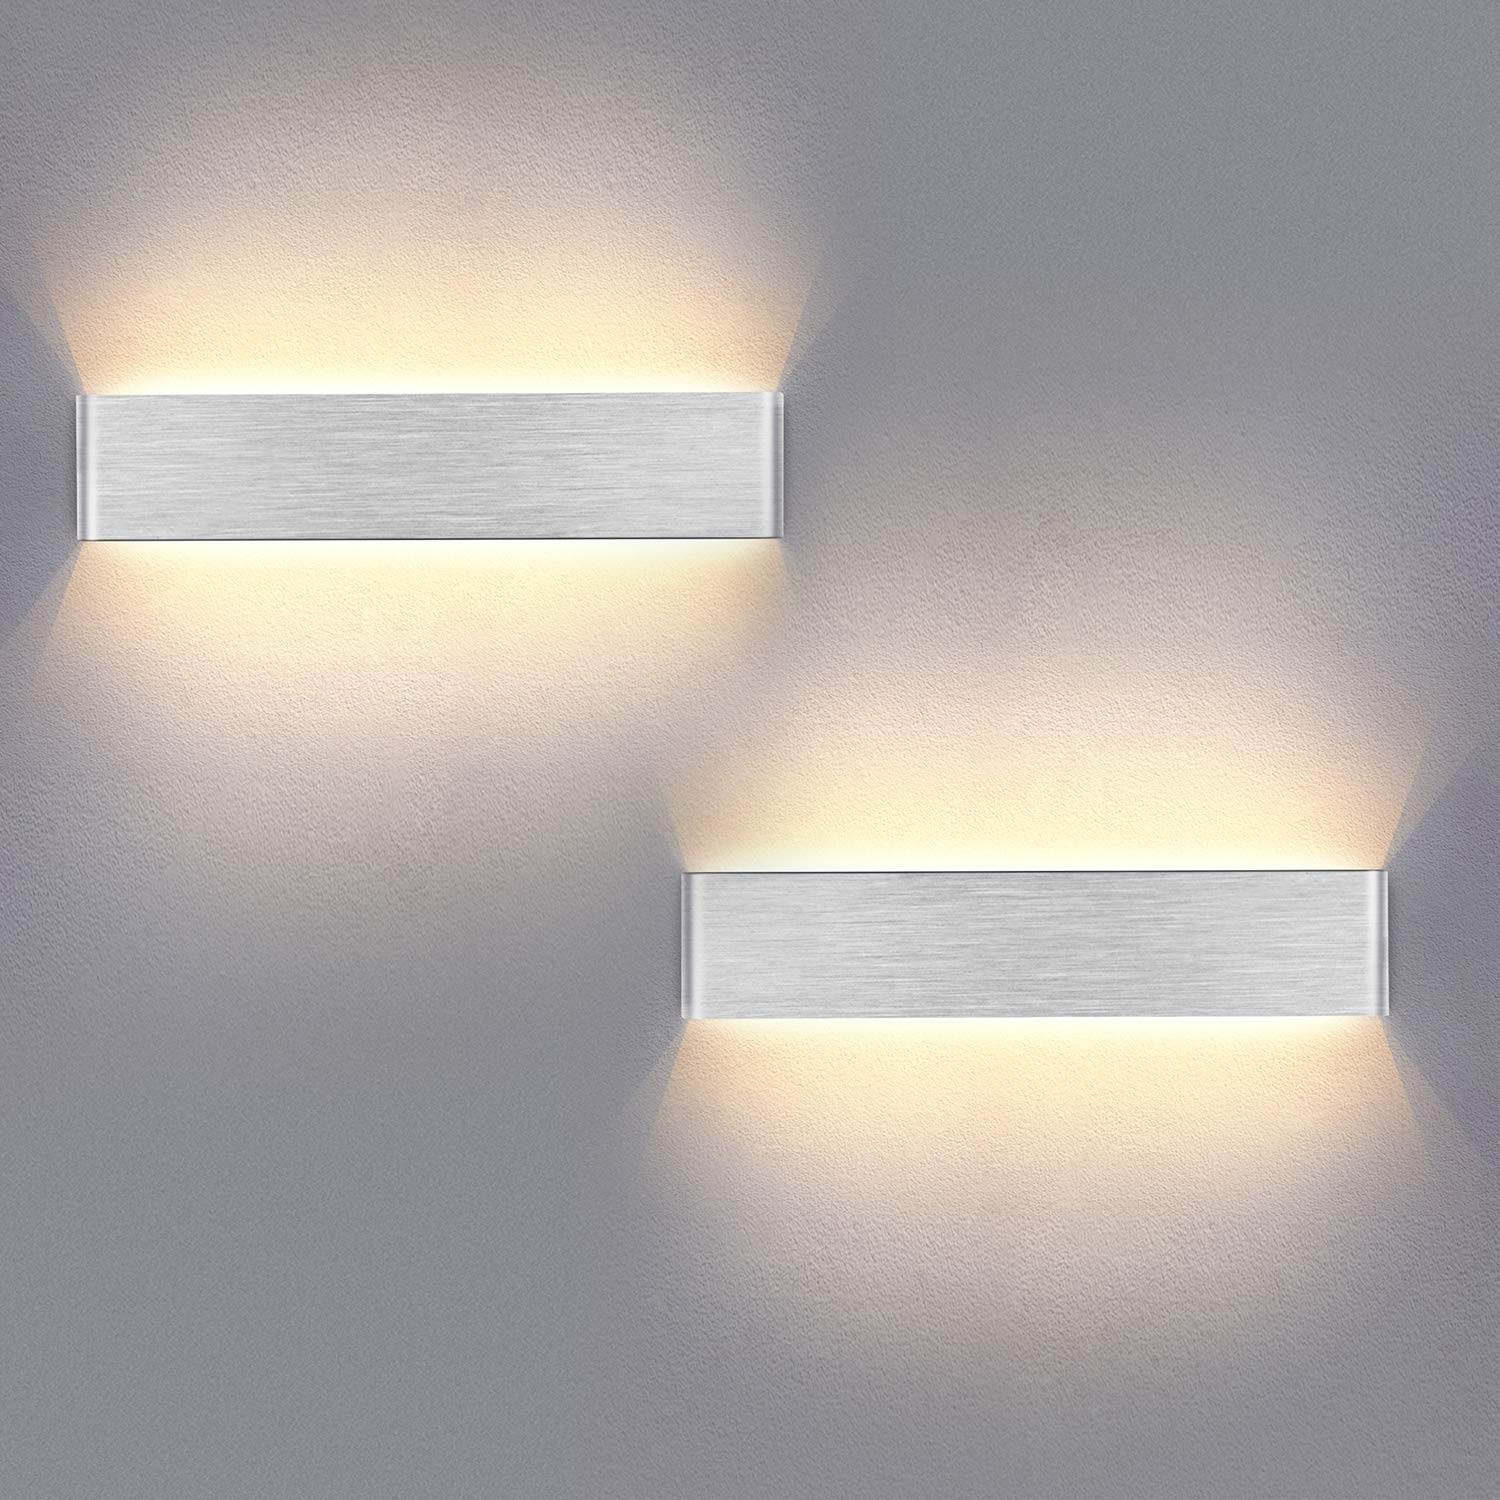 Yafido 2x Aplique Pared Interior LED 40CM Lámpara de pared Moderna 14W Blanco Cálido 3000K plata cepillado para Salon Dormitorio Sala Pasillo Escalera 220V: Amazon.es: Iluminación